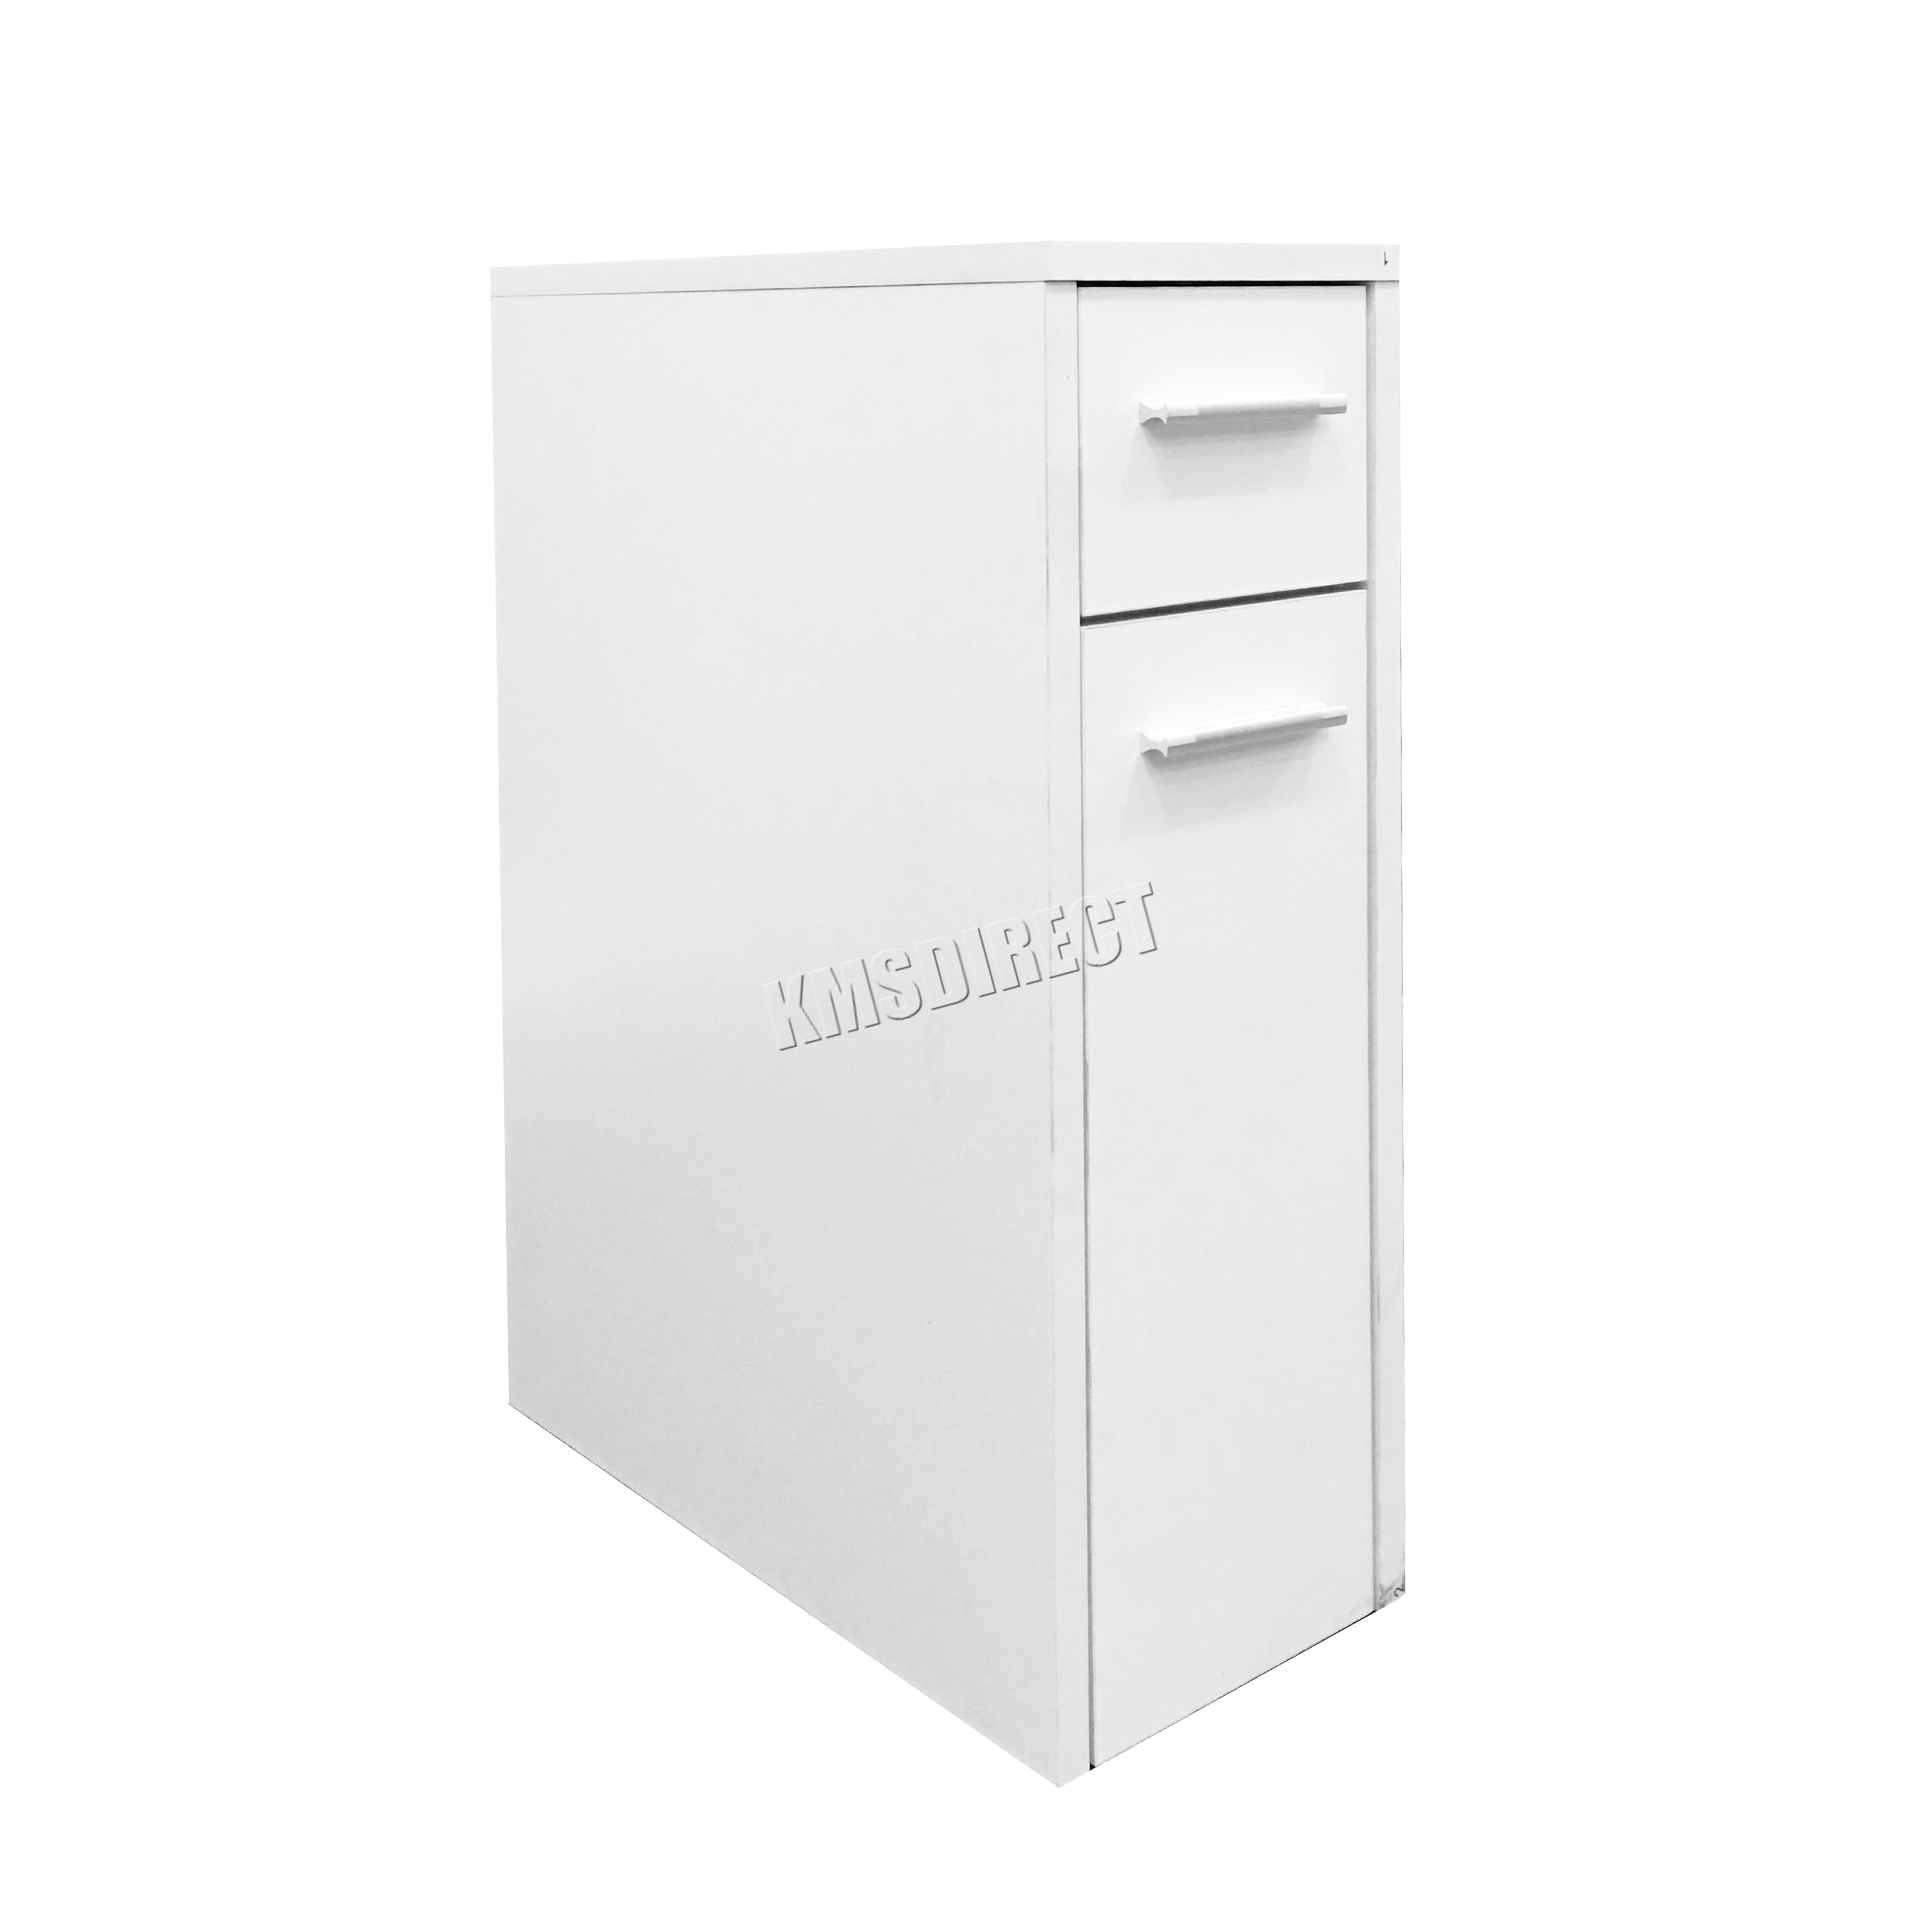 Foxhunter bathroom kitchen slide out storage drawer for Slim bathroom cabinet